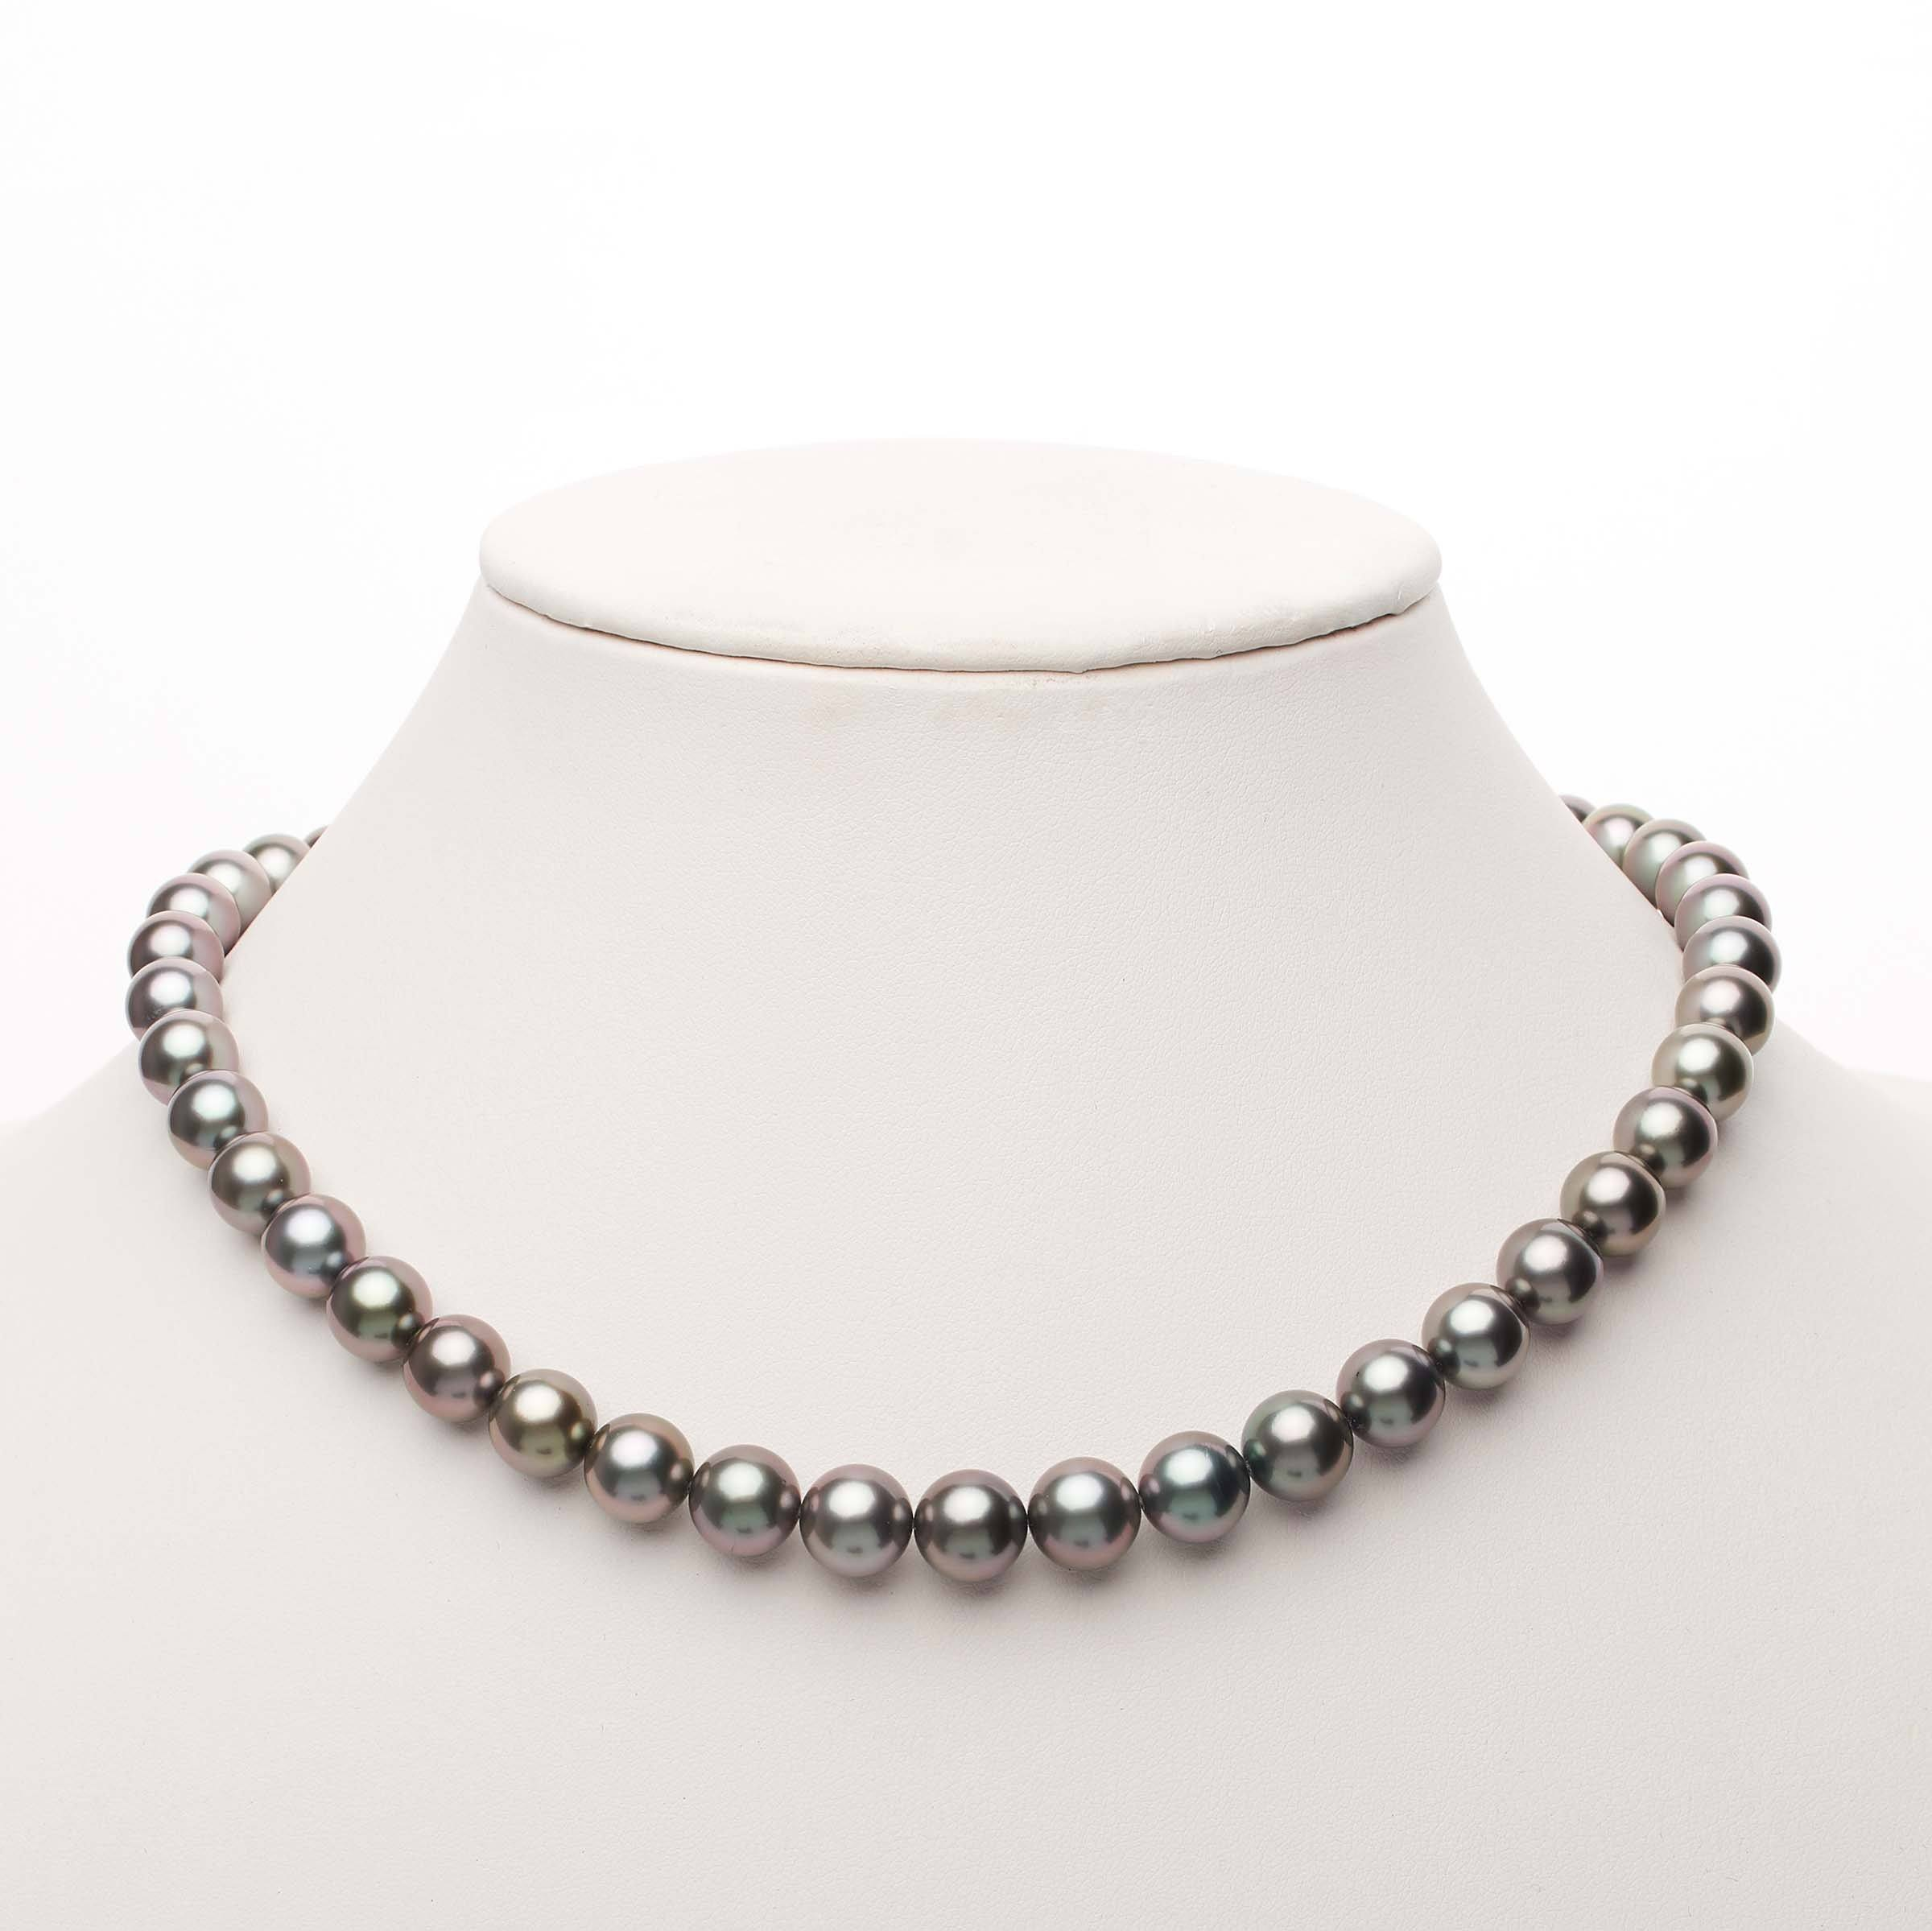 18-inch 8.3-9.8 mm AAA Round Tahitian Pearl Necklace